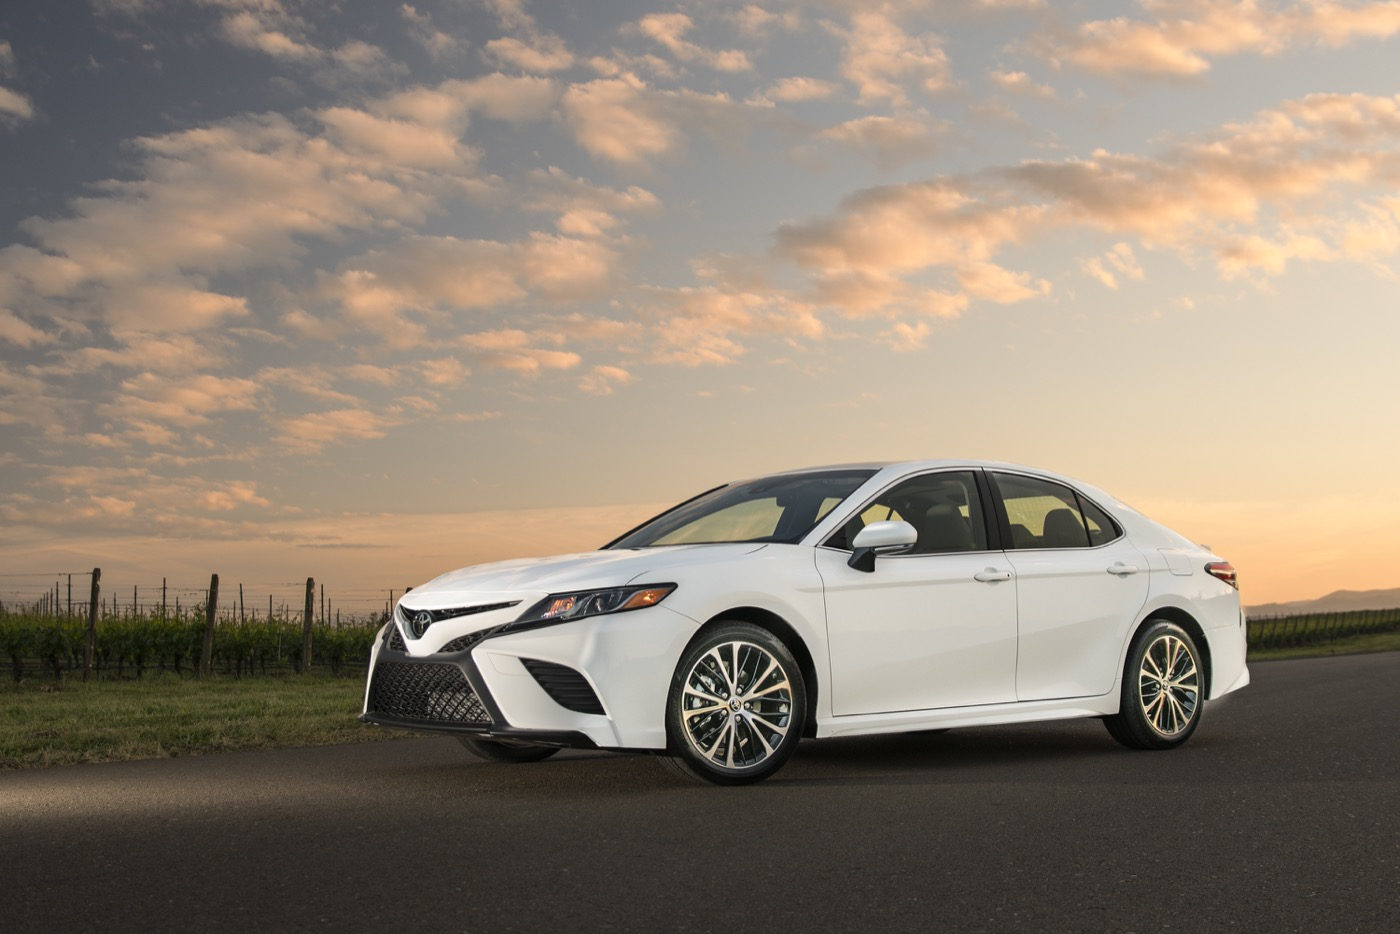 all new camry white harga grand veloz 1.3 2015 toyota sees upside for 2018 if rivals decide to